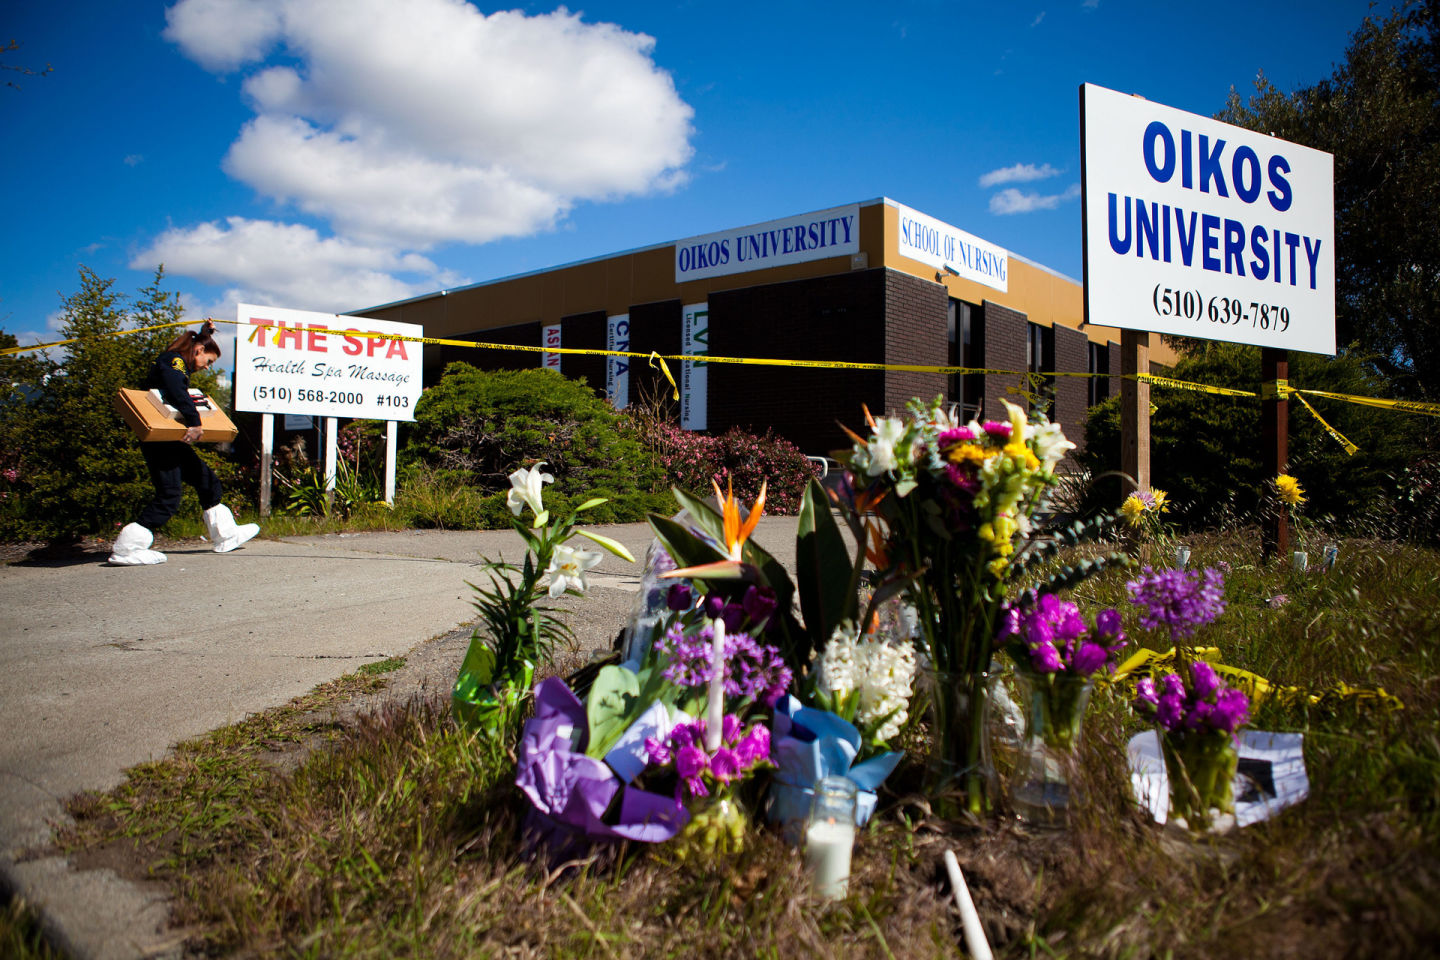 Judge Deems Suspect in Oikos University Killings Mentally Incompetent